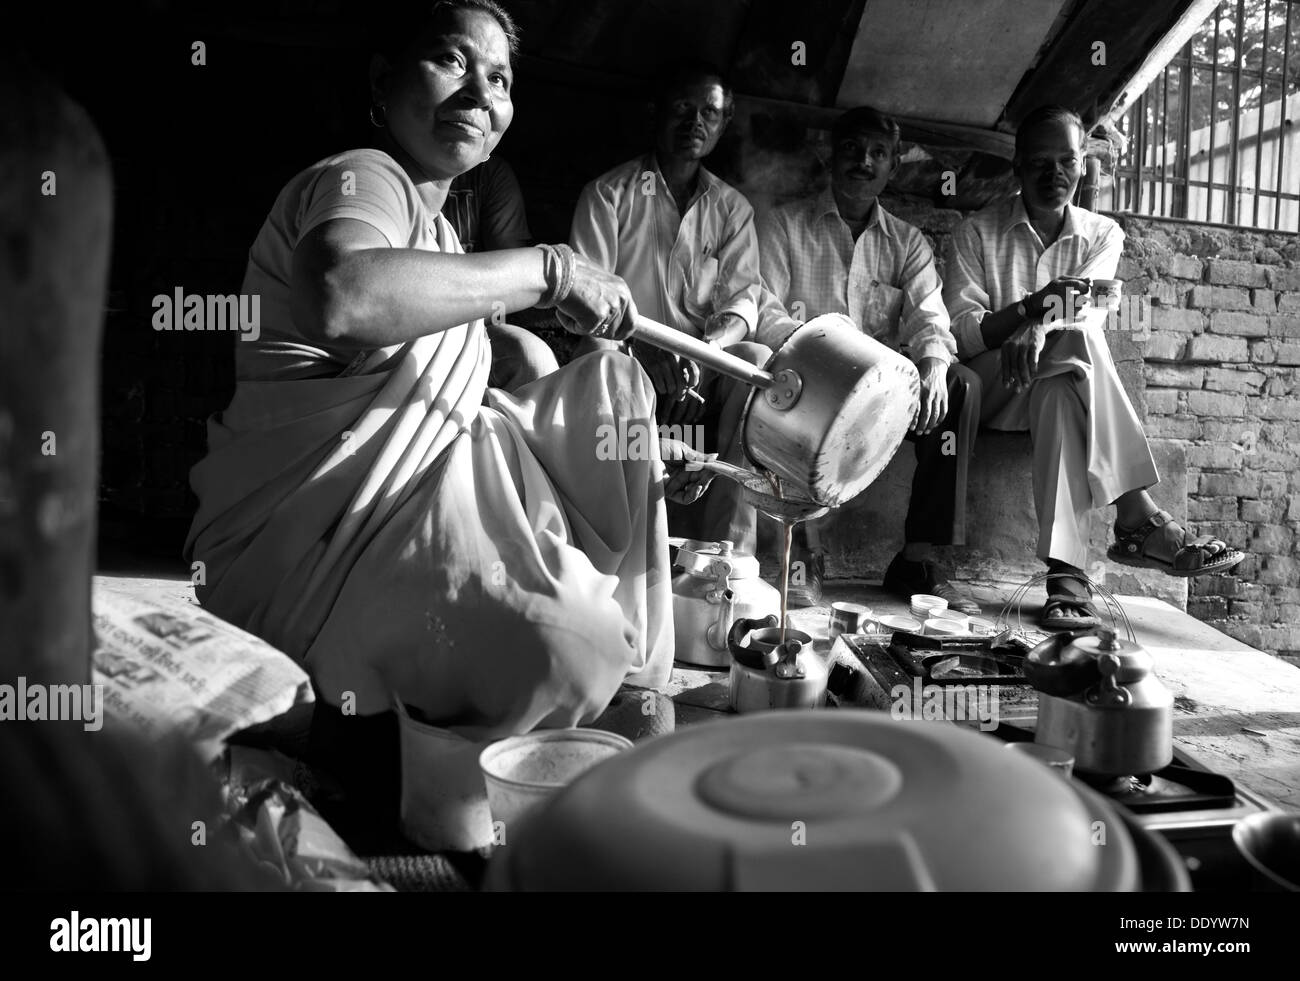 Black and white image of Indian female vendor pouring tea in kettle with customers sitting in background - Stock Image